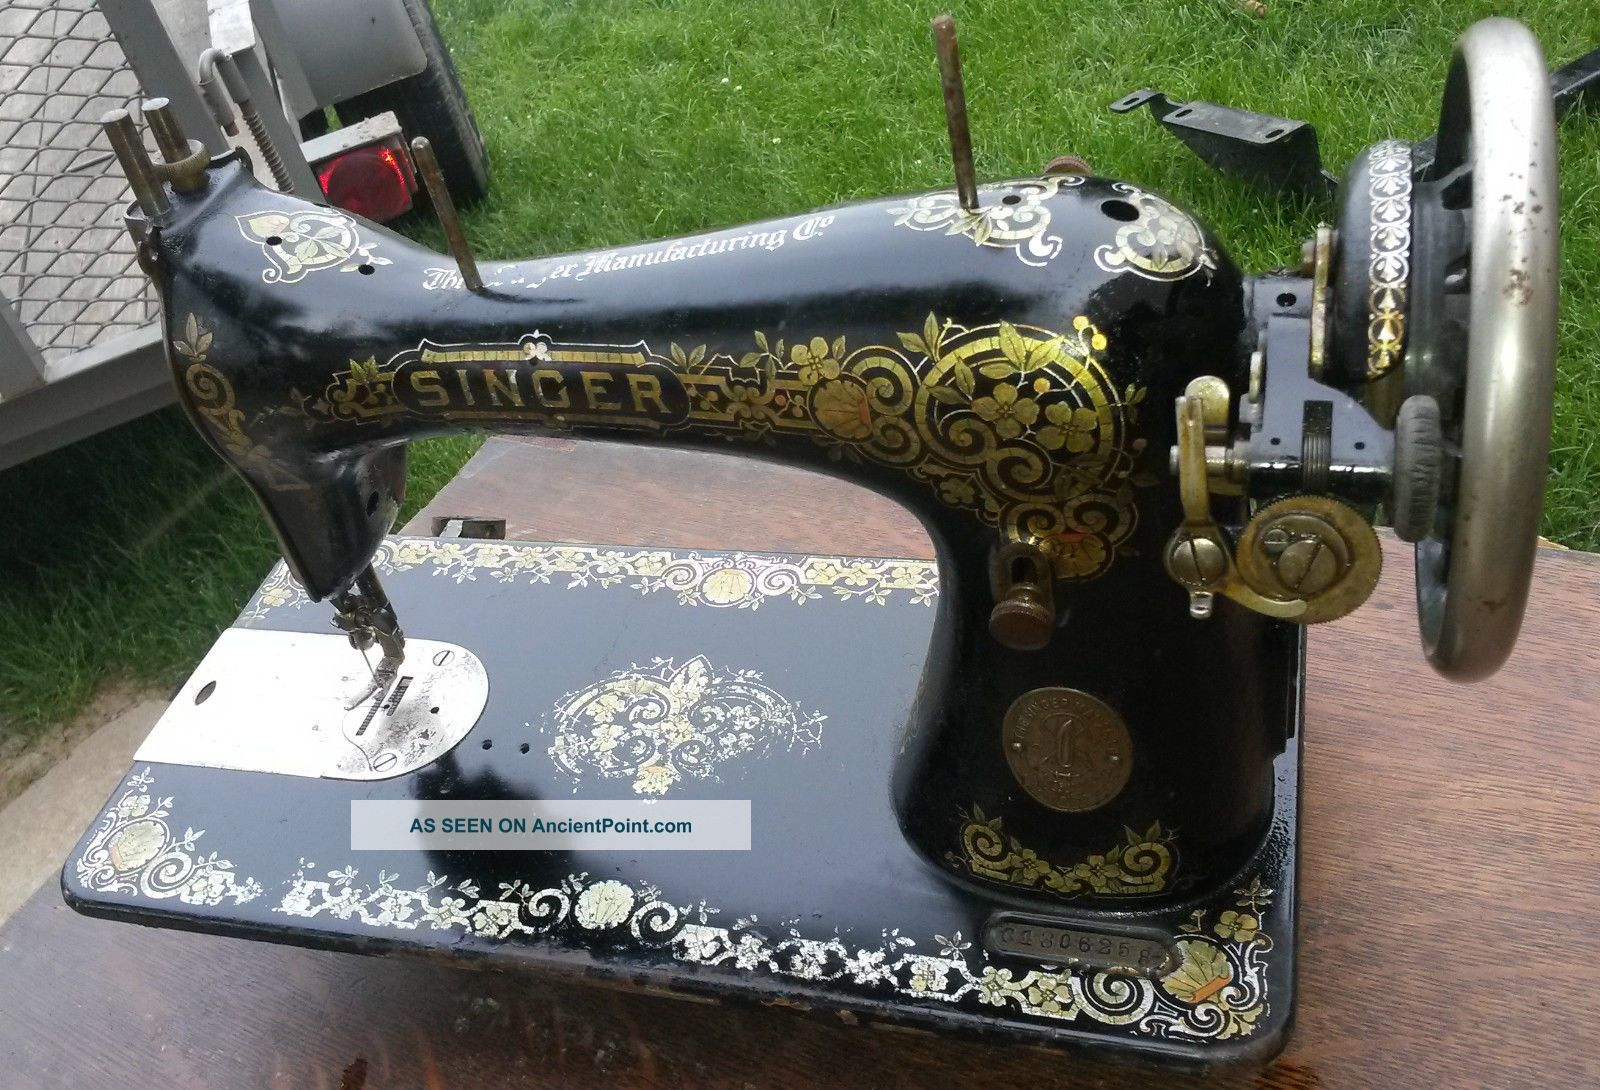 Antique Singer Sewing Machine (1908) Tiffany Model 28/128 Sewing Machines photo